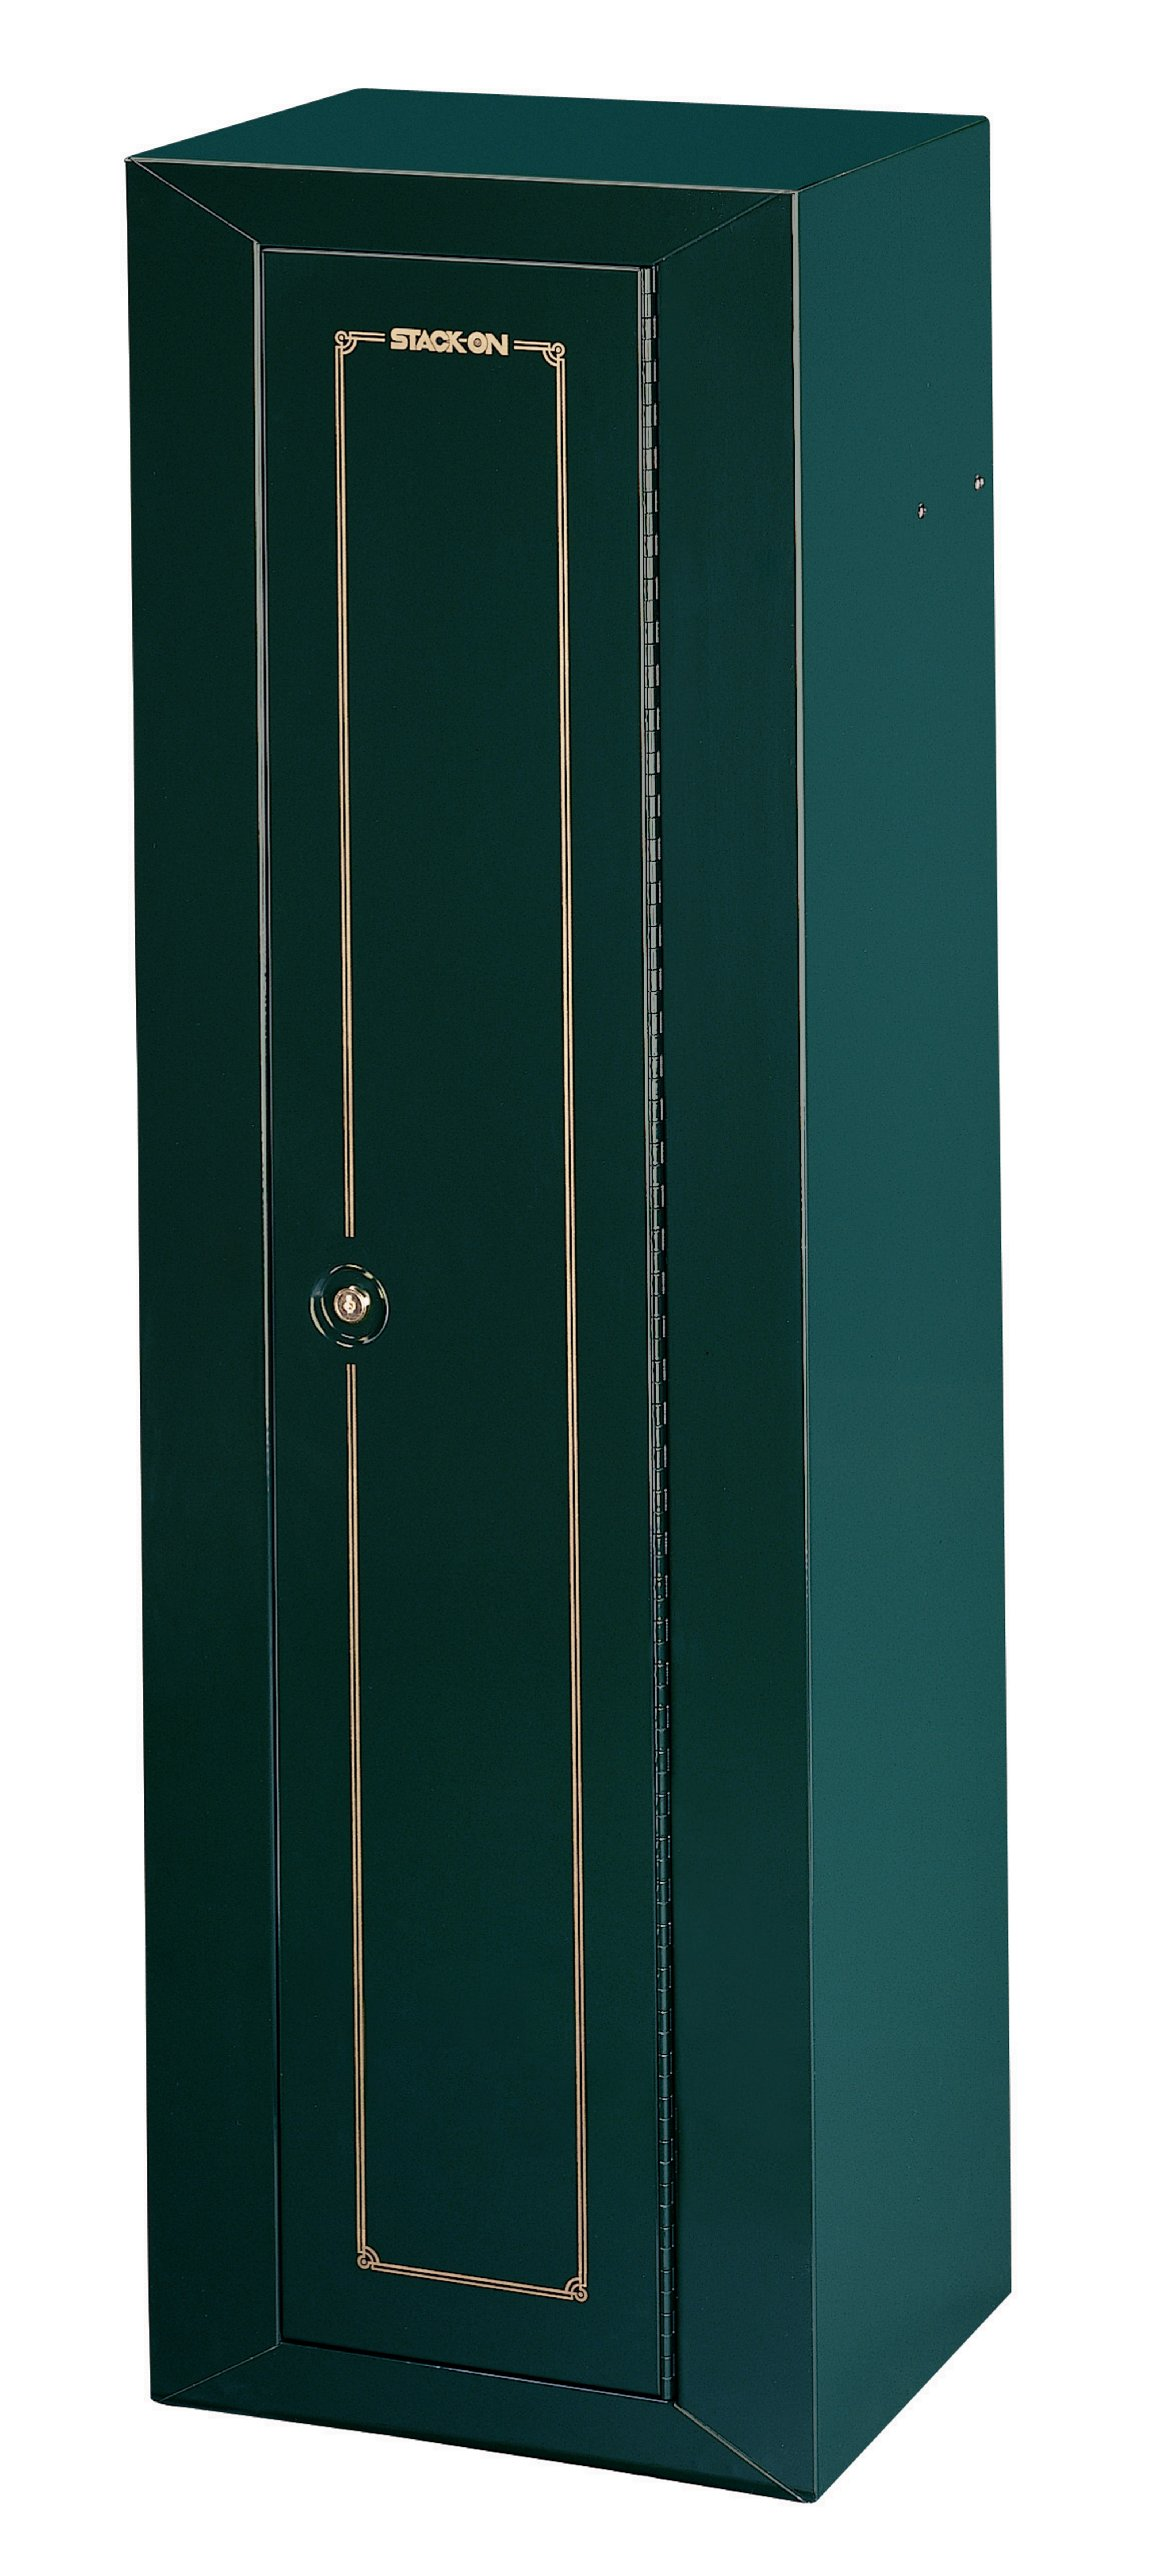 Stack-On GCG-910 Steel 10-Gun Security Cabinet, Green by Stack-On